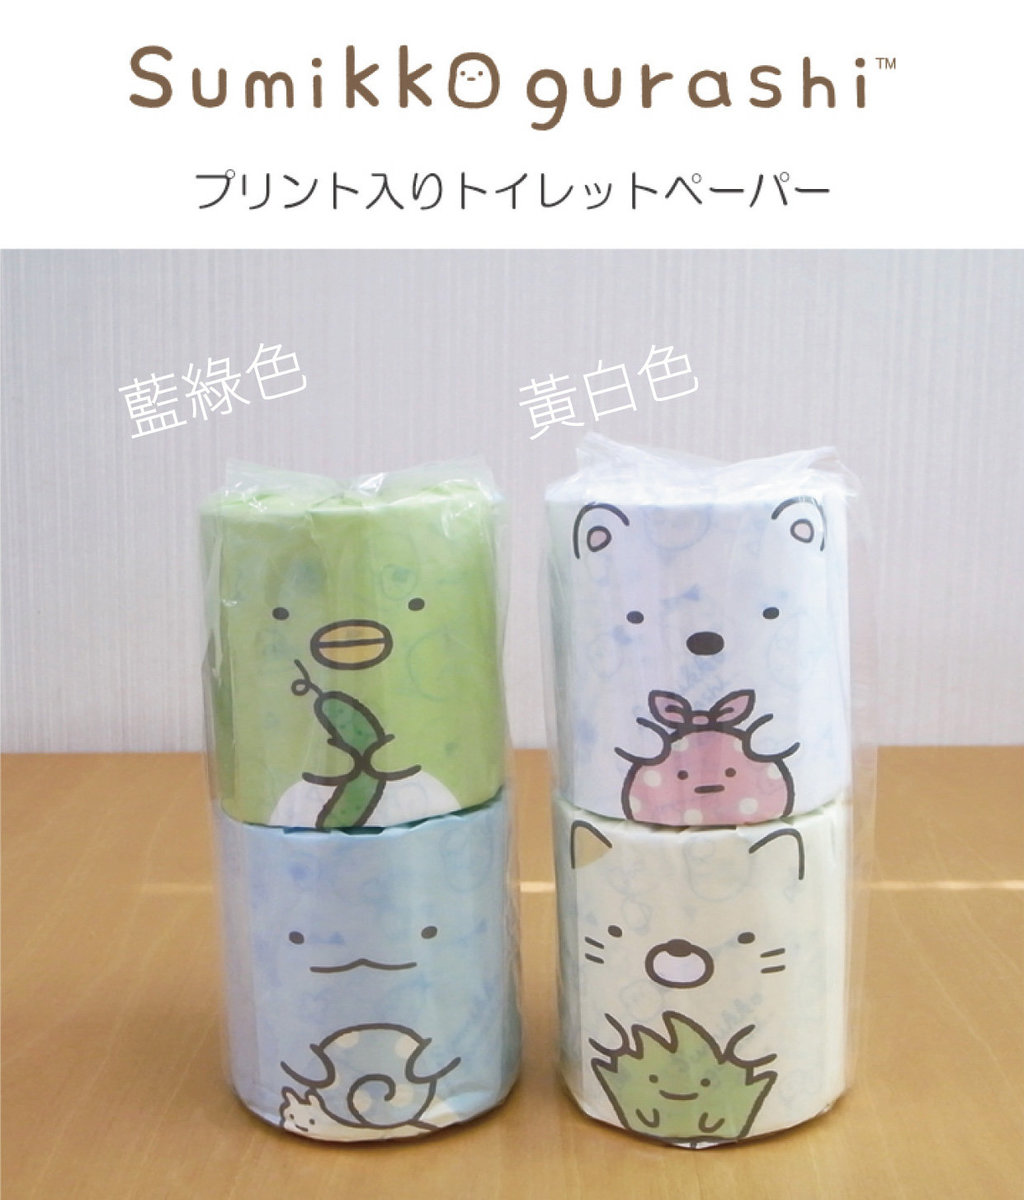 (Sumikko Gurashi Yellow White) Made in Japan SAN-X Printed Toilet Paper 2-Roll Set